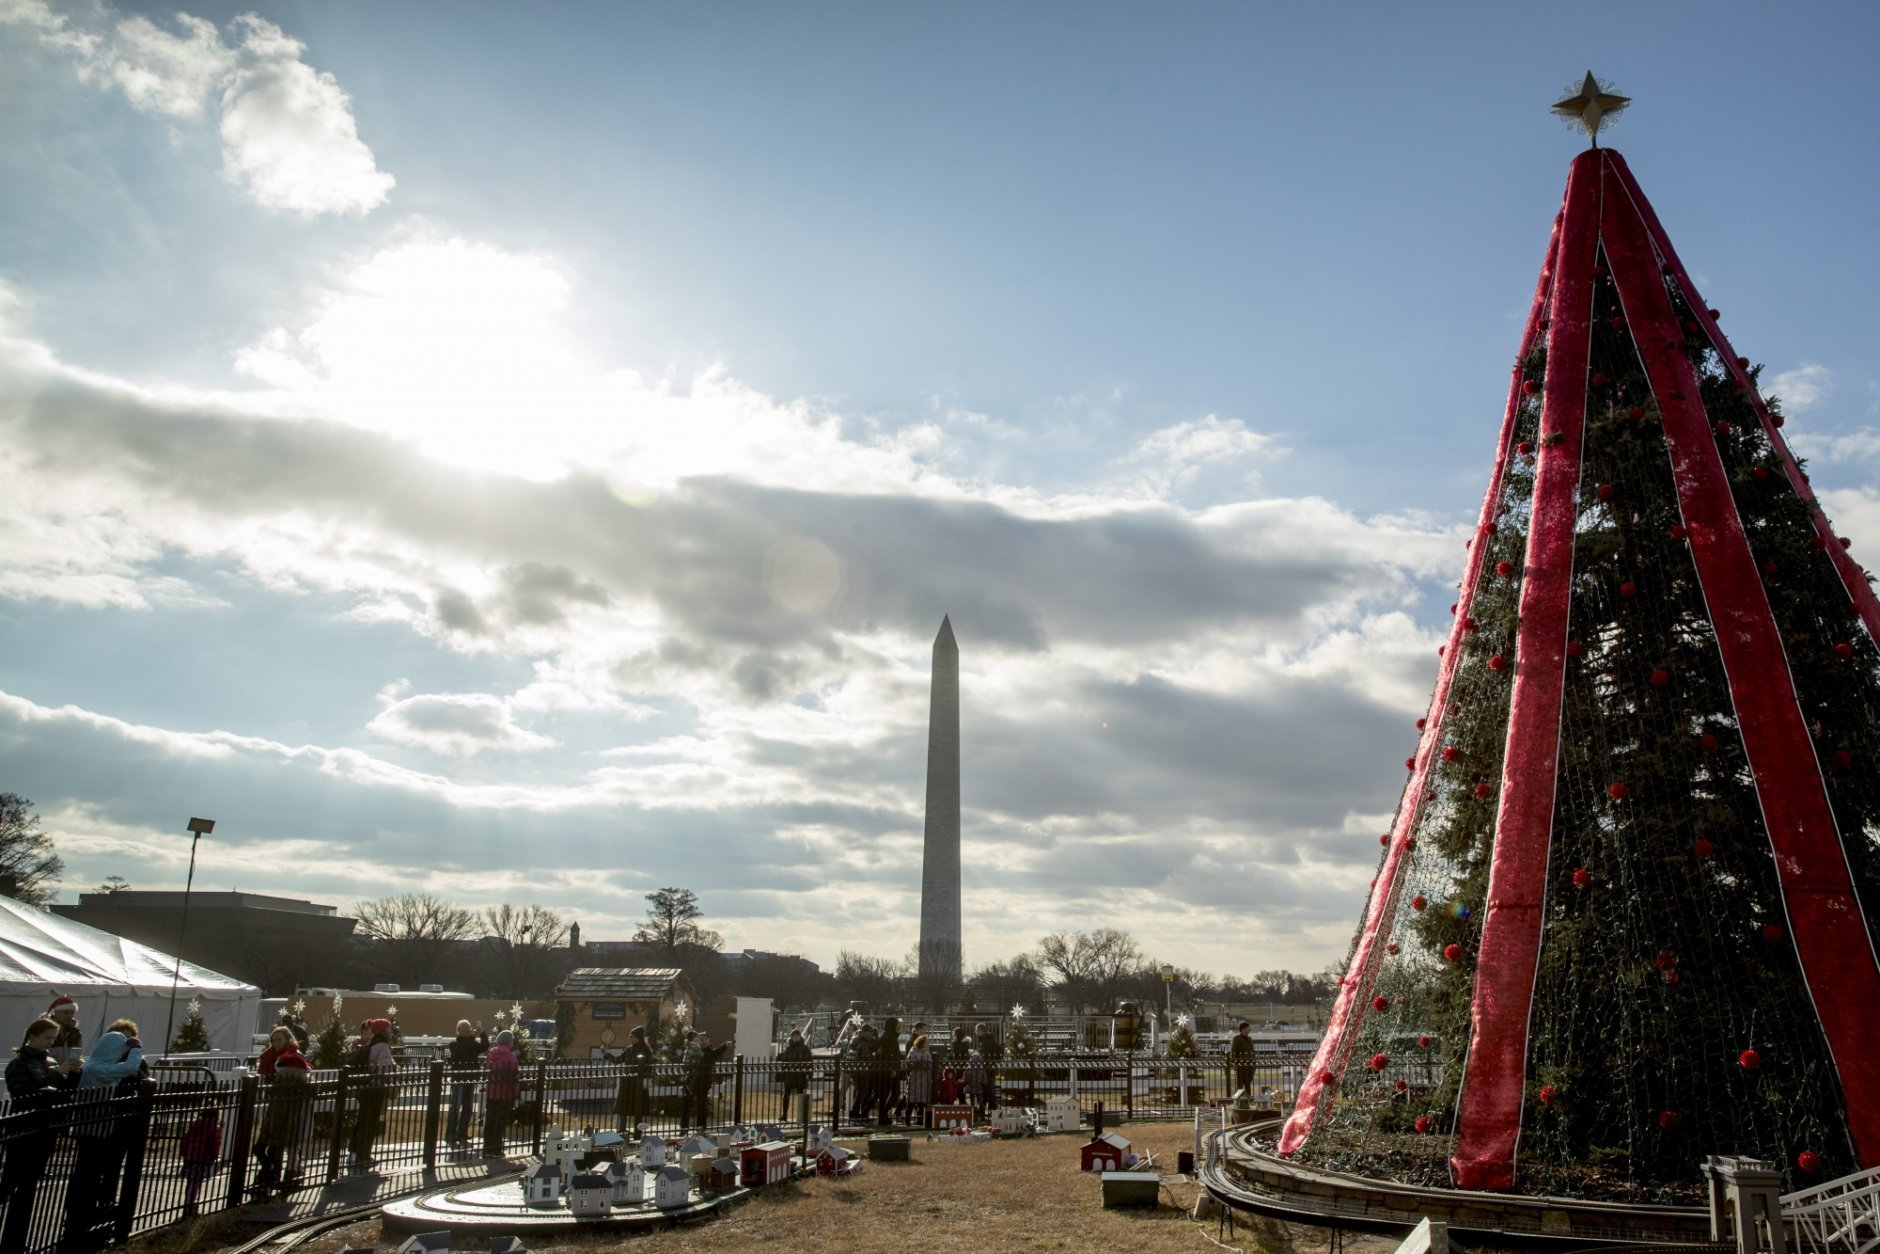 Visitors to the National Christmas Tree on the Ellipse look at holiday decorations as National Park Service employees briefly open the venue before quickly having to close again due to electrical problems, Monday, Dec. 24, 2018, in Washington. Repairs were delayed because of a partial government shutdown. Both sides in the long-running fight over funding President Donald Trump's U.S.-Mexico border wall appear to have moved toward each other, but a shutdown of one-fourth of the federal government entered Christmas without a clear resolution in sight. (AP Photo/Andrew Harnik)